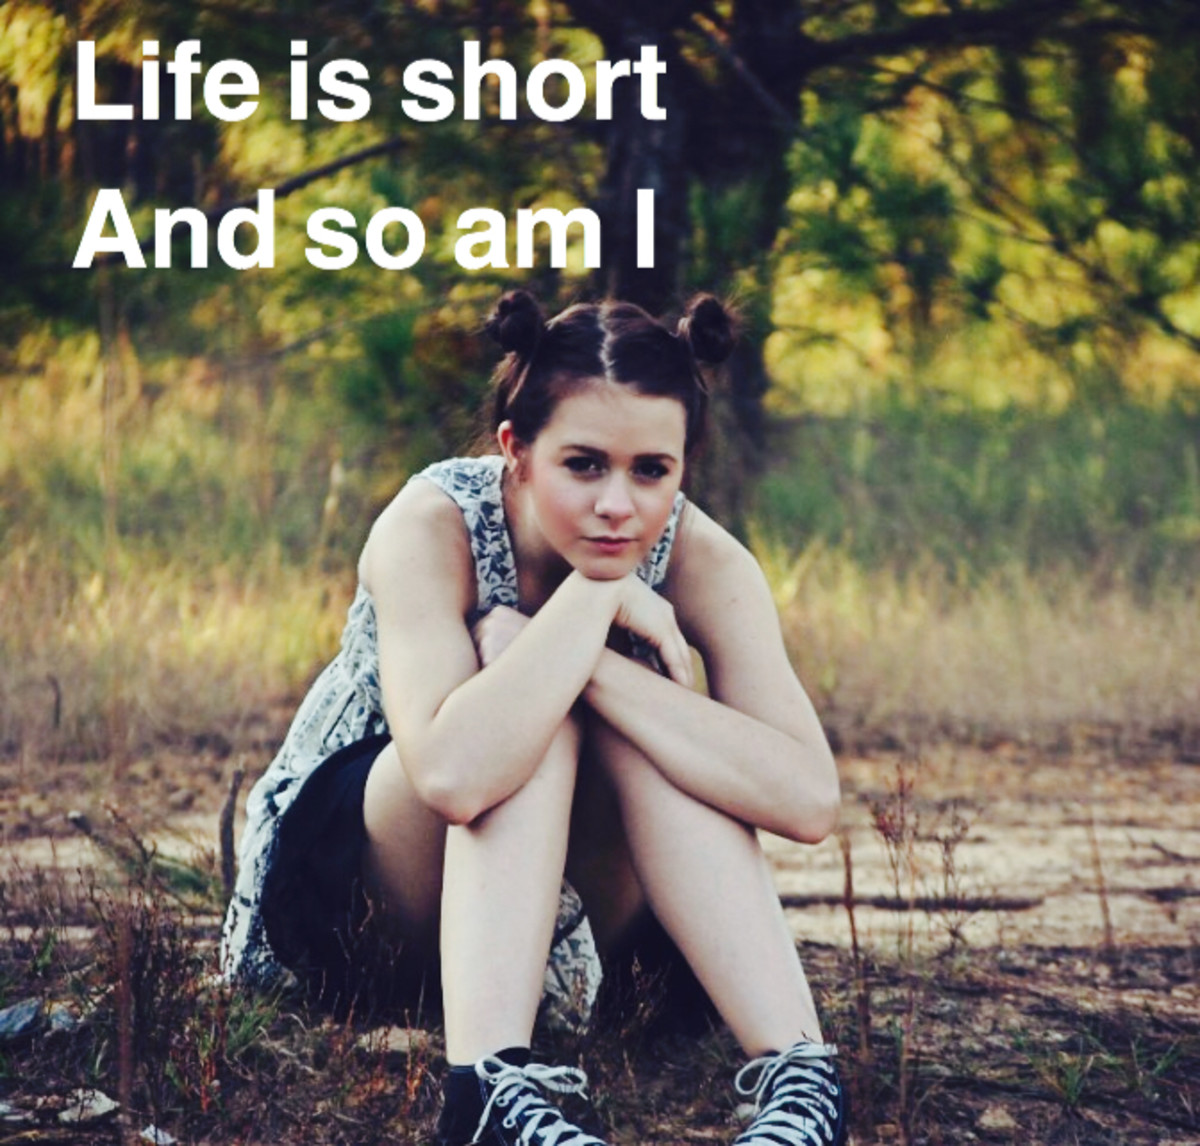 life-is-too-short-quotes-for-facebook-and-twitter-status